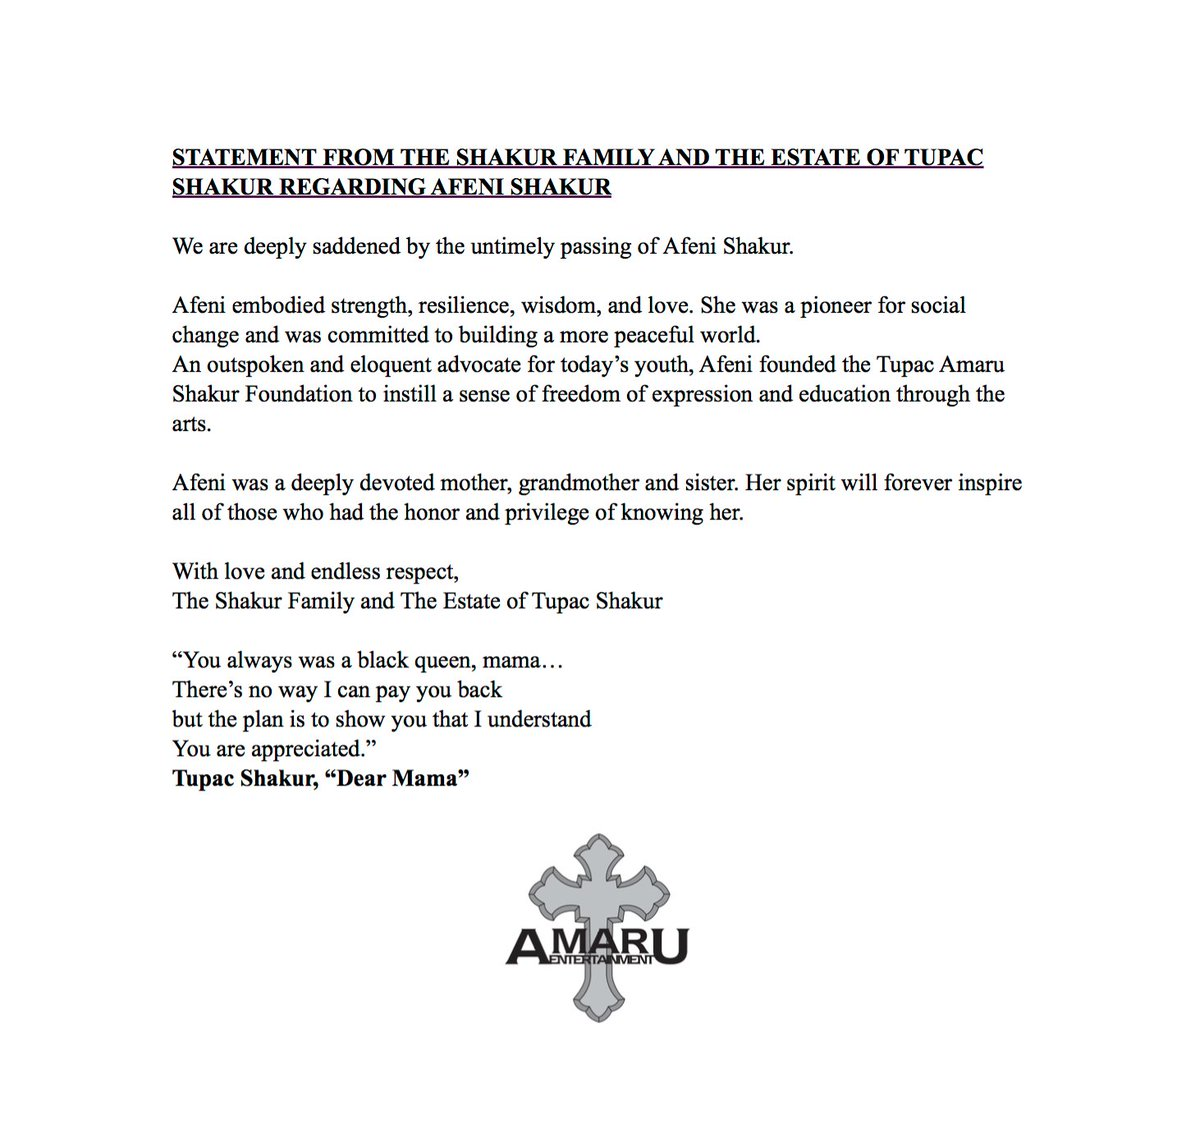 STATEMENT FROM THE SHAKUR FAMILY AND THE ESTATE OF TUPAC SHAKUR REGARDING AFENI SHAKUR https://t.co/WBJkjRchNP